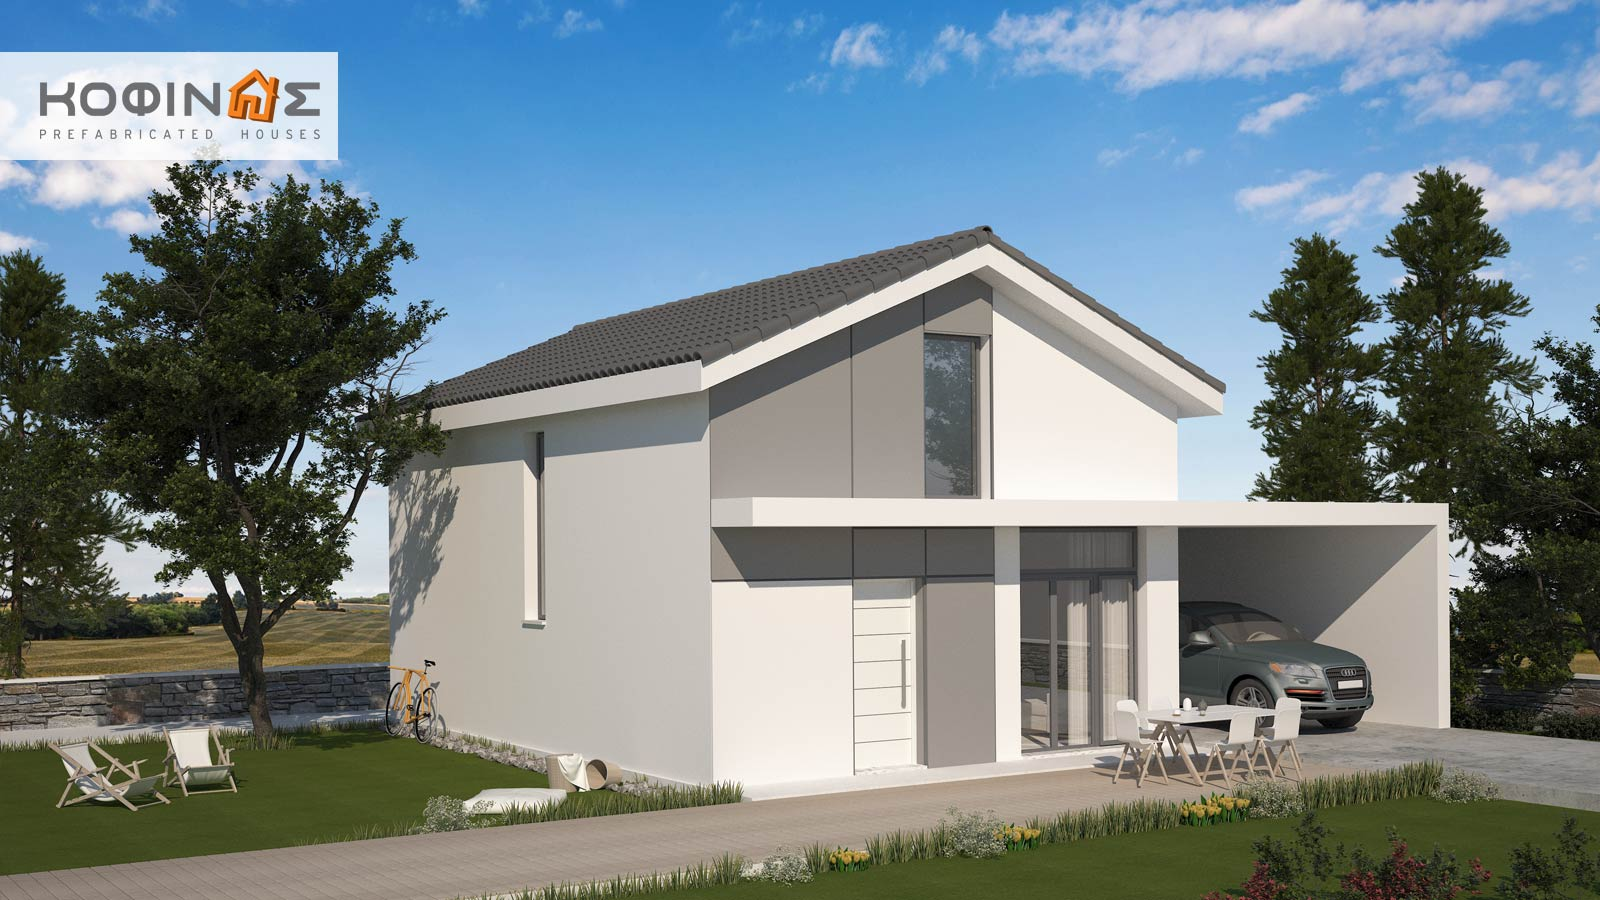 1-story house with attic KIS2-112, total surface of 112,00 m²